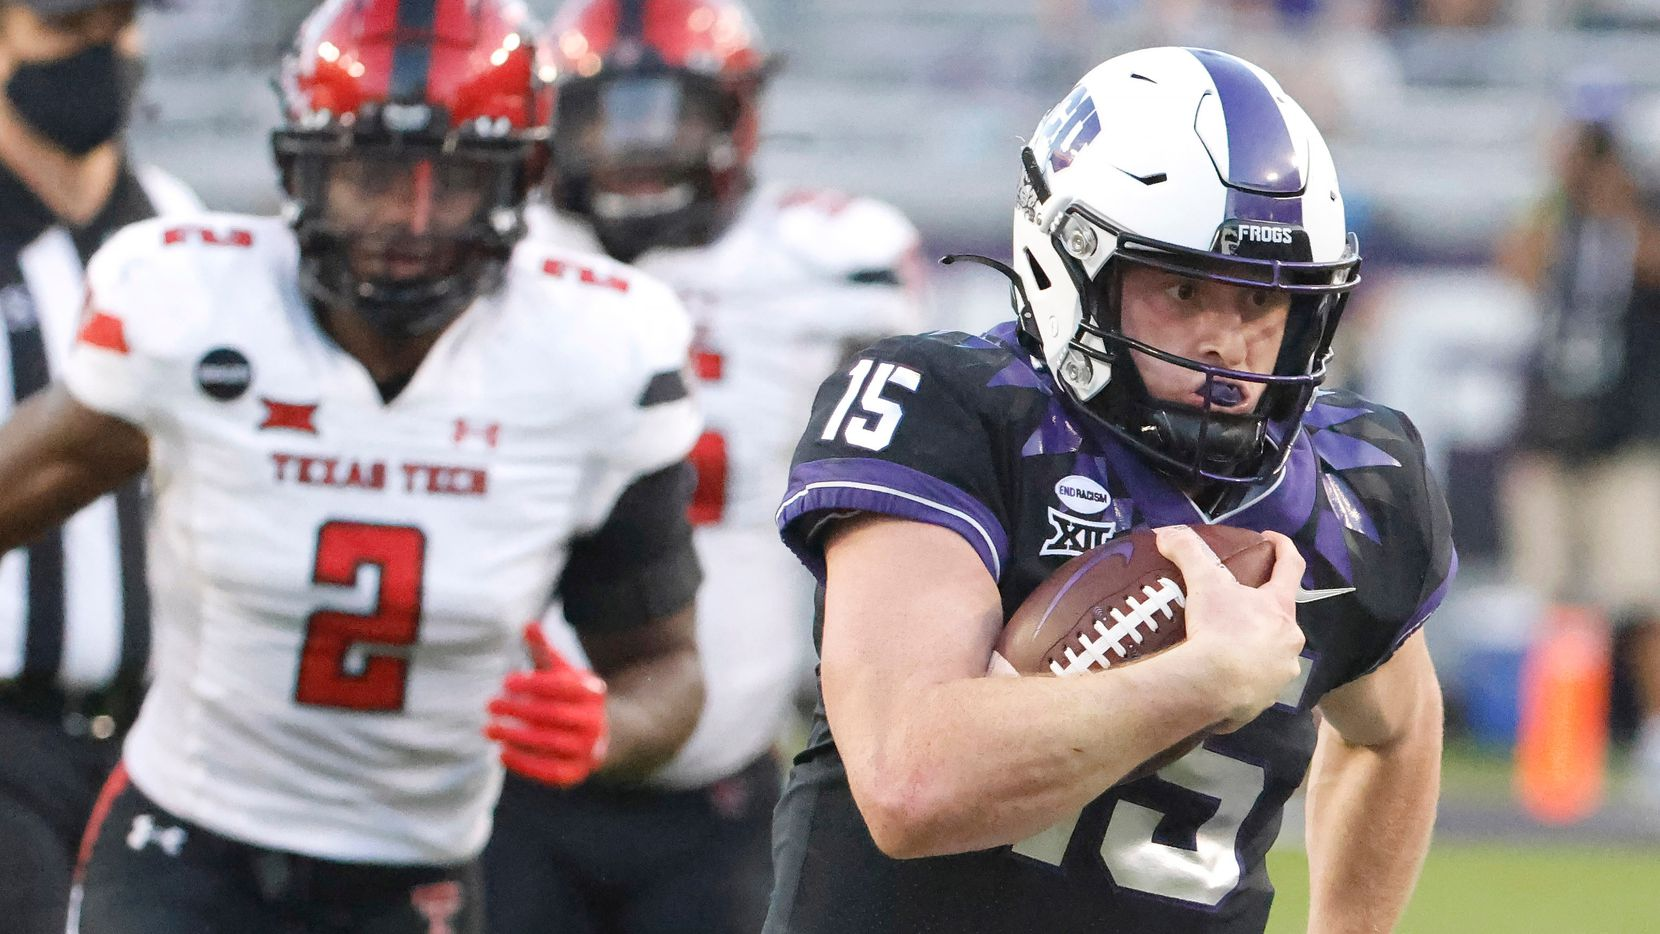 TCU quarterback Max Duggan (15) takes off past Texas Tech linebacker Brandon Bouyer-Randle (2) on a 48-yard touchdown run during the second half of an NCAA college football game Saturday, Nov. 7, 2020, in Fort Worth, Texas. TCU won 34-18.